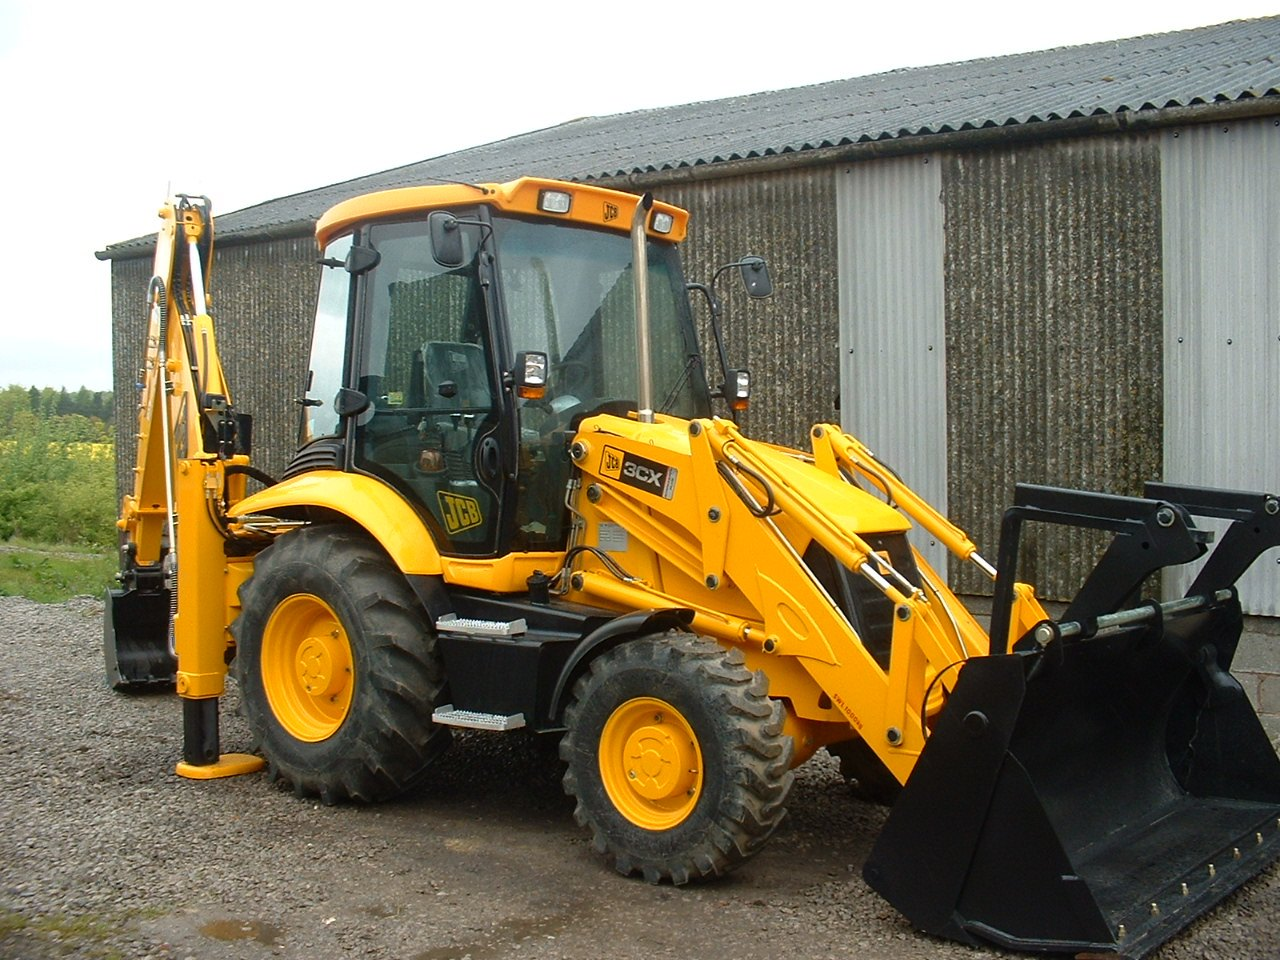 Jcb 3cs photo - 1